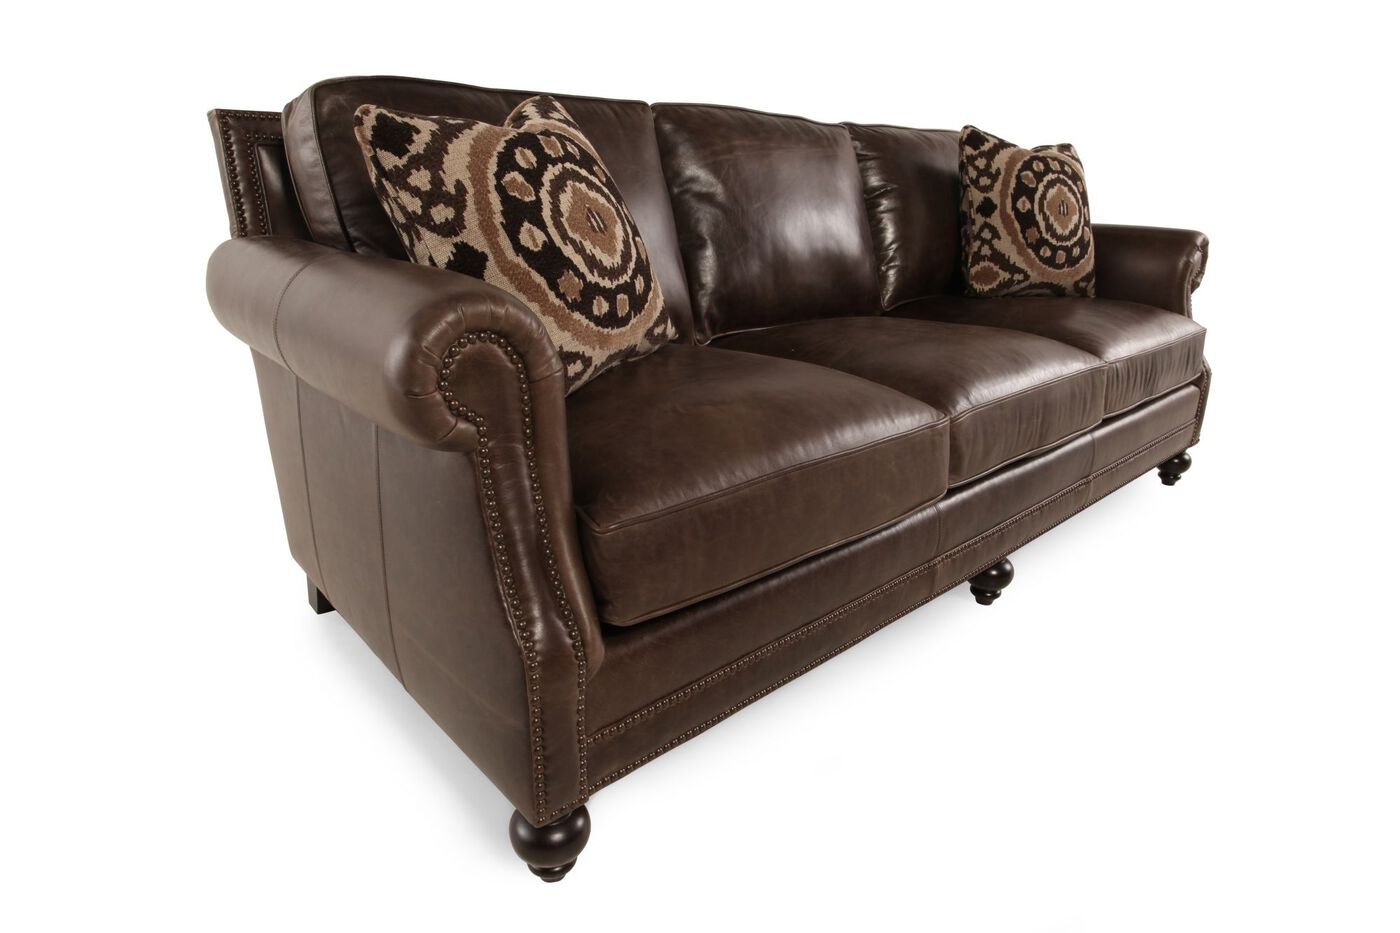 Mathis brothers leather sofas bernhardt leather sofa for Bernhardt furniture